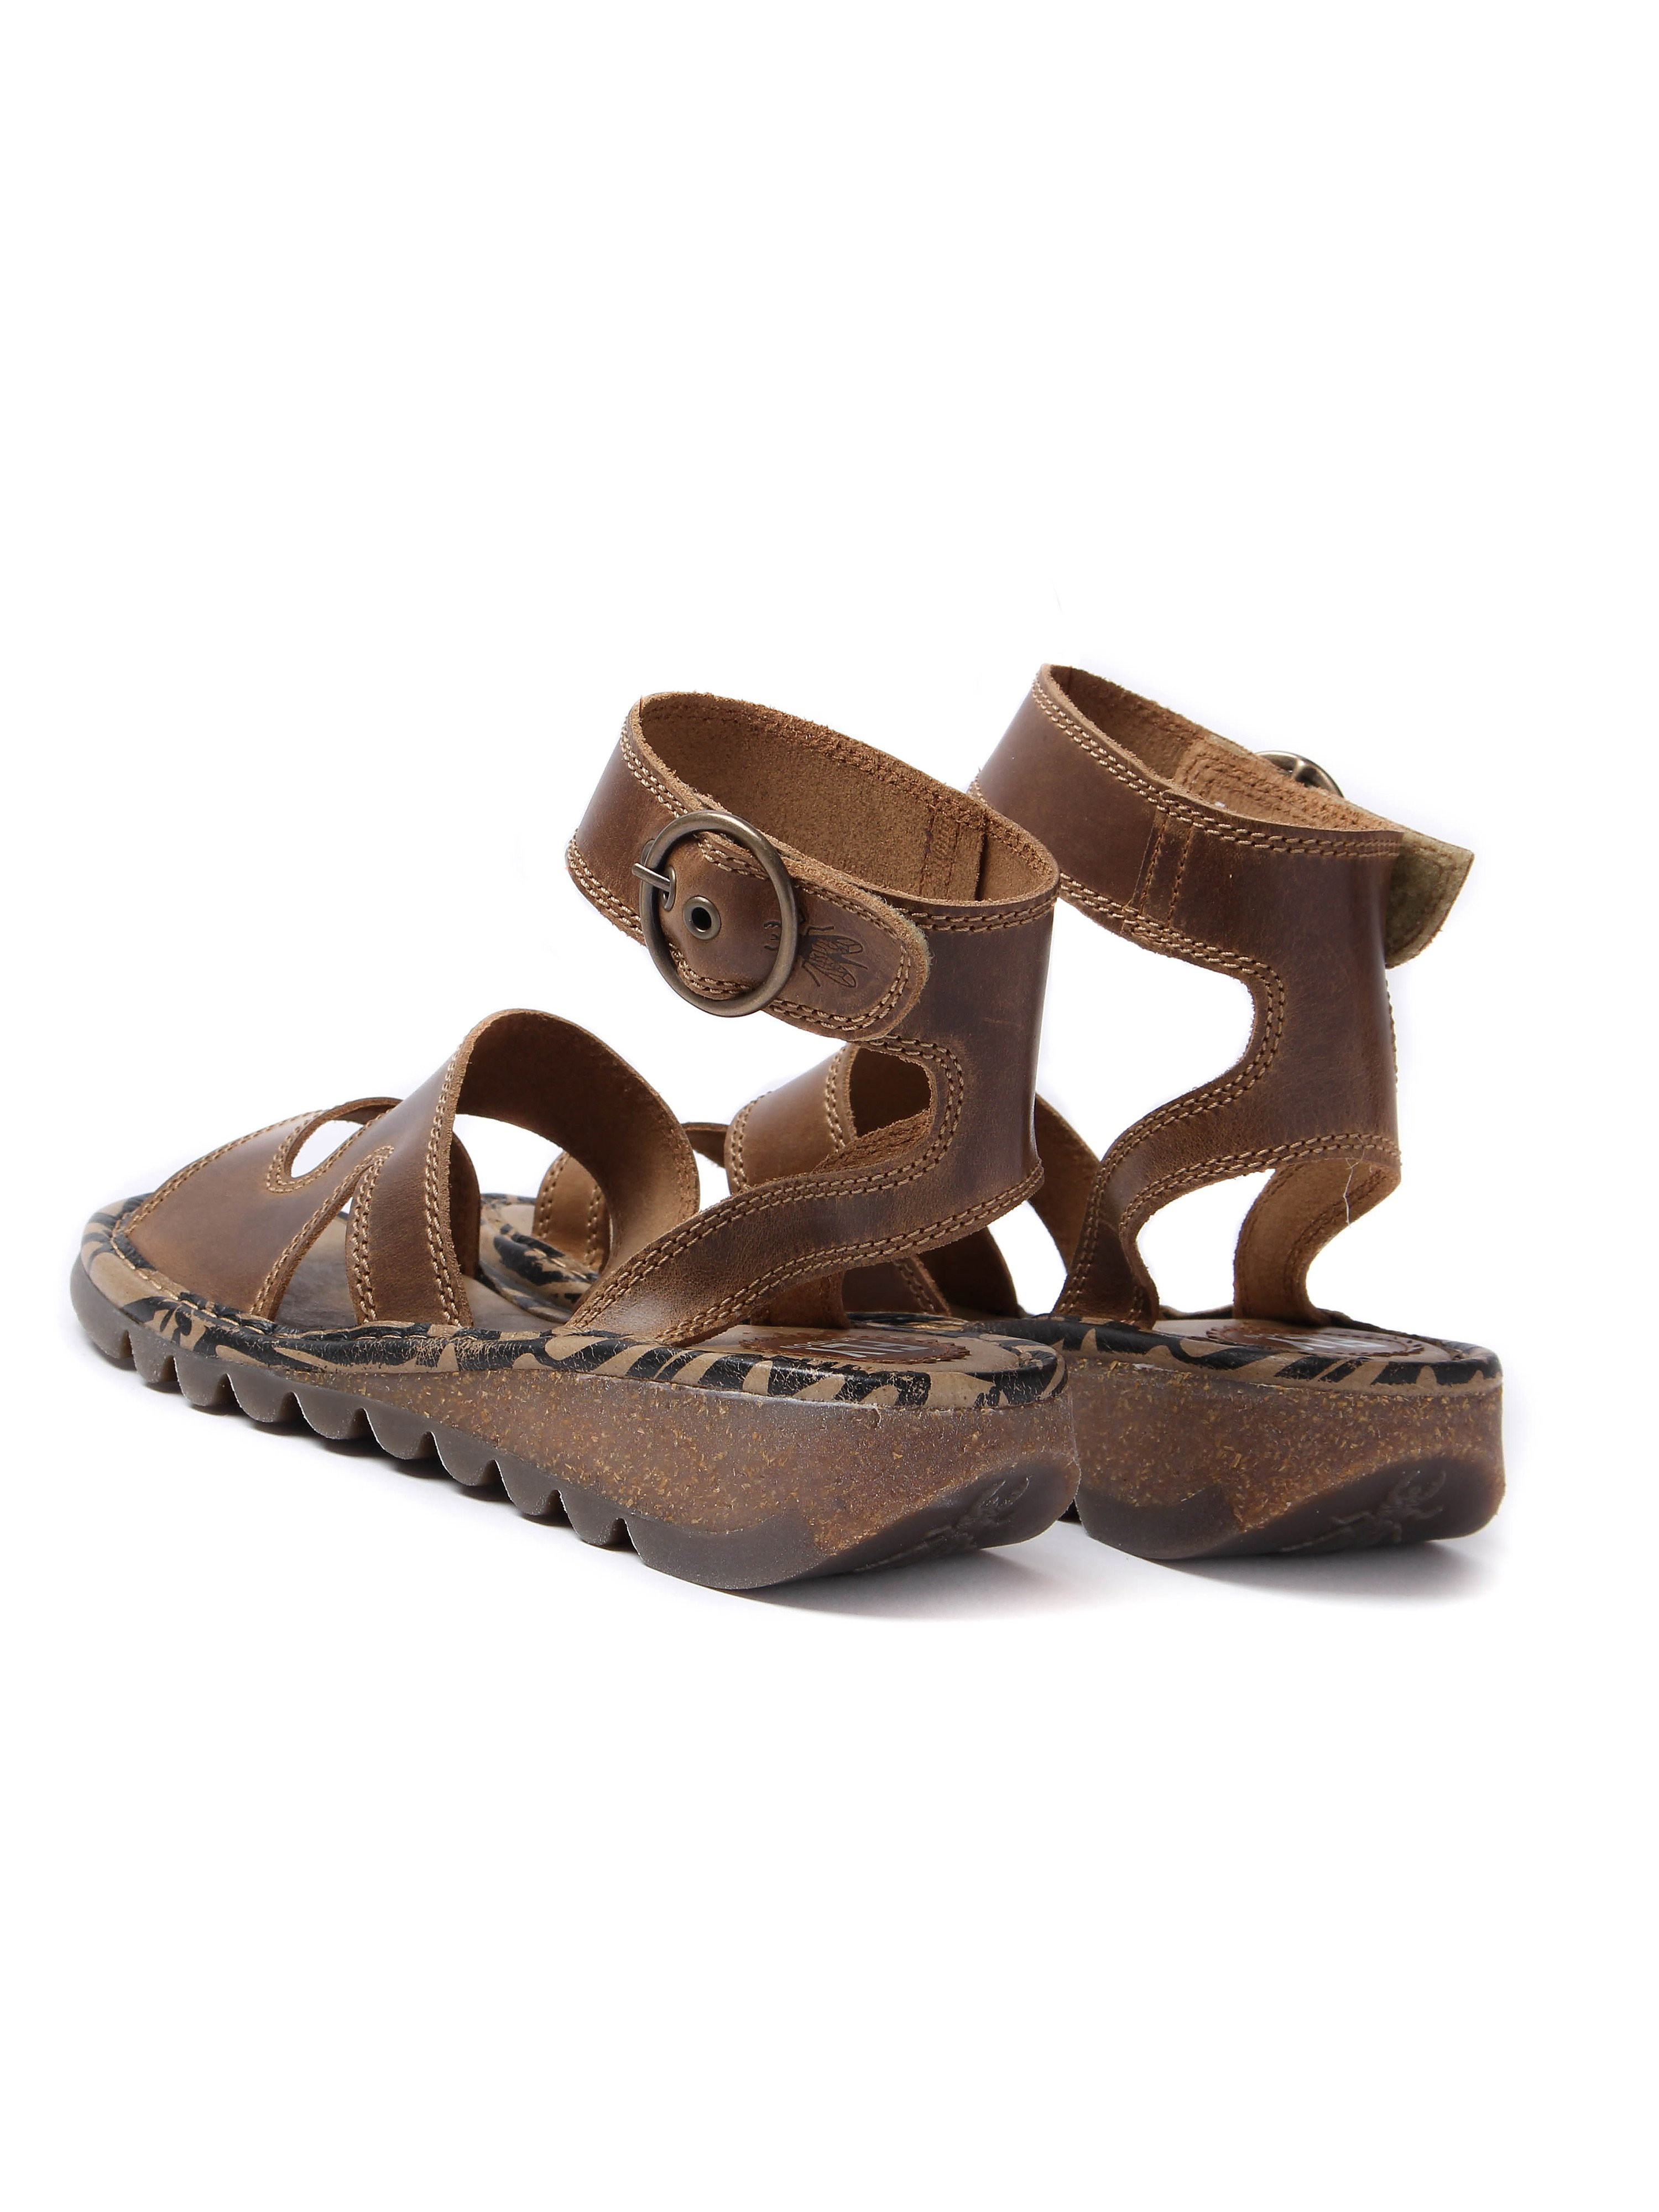 Fly London Women's Tily Bridle Leather Sandals - Camel